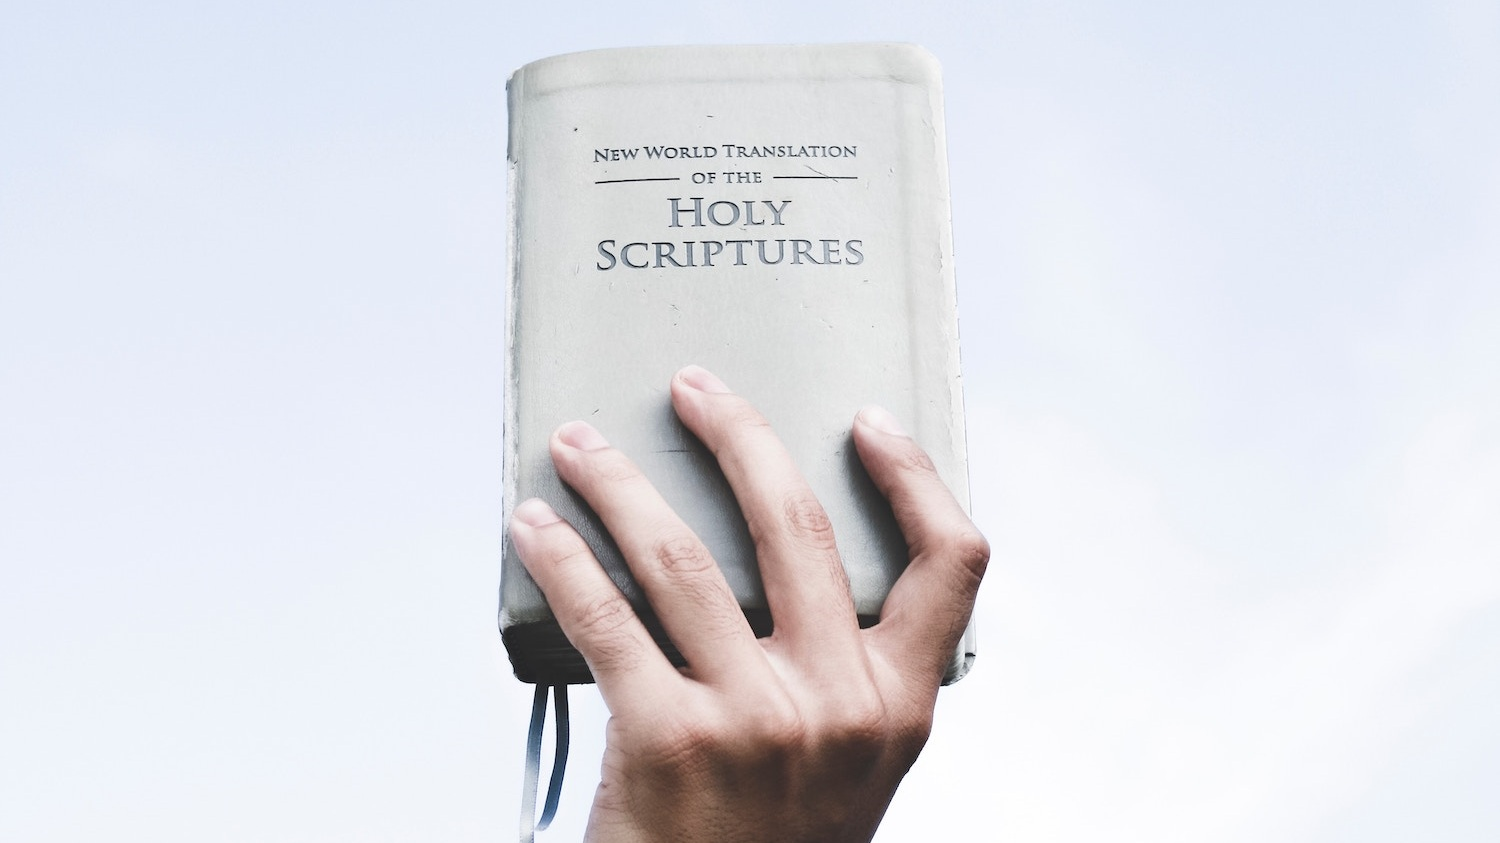 A hand holding a Bible in the air